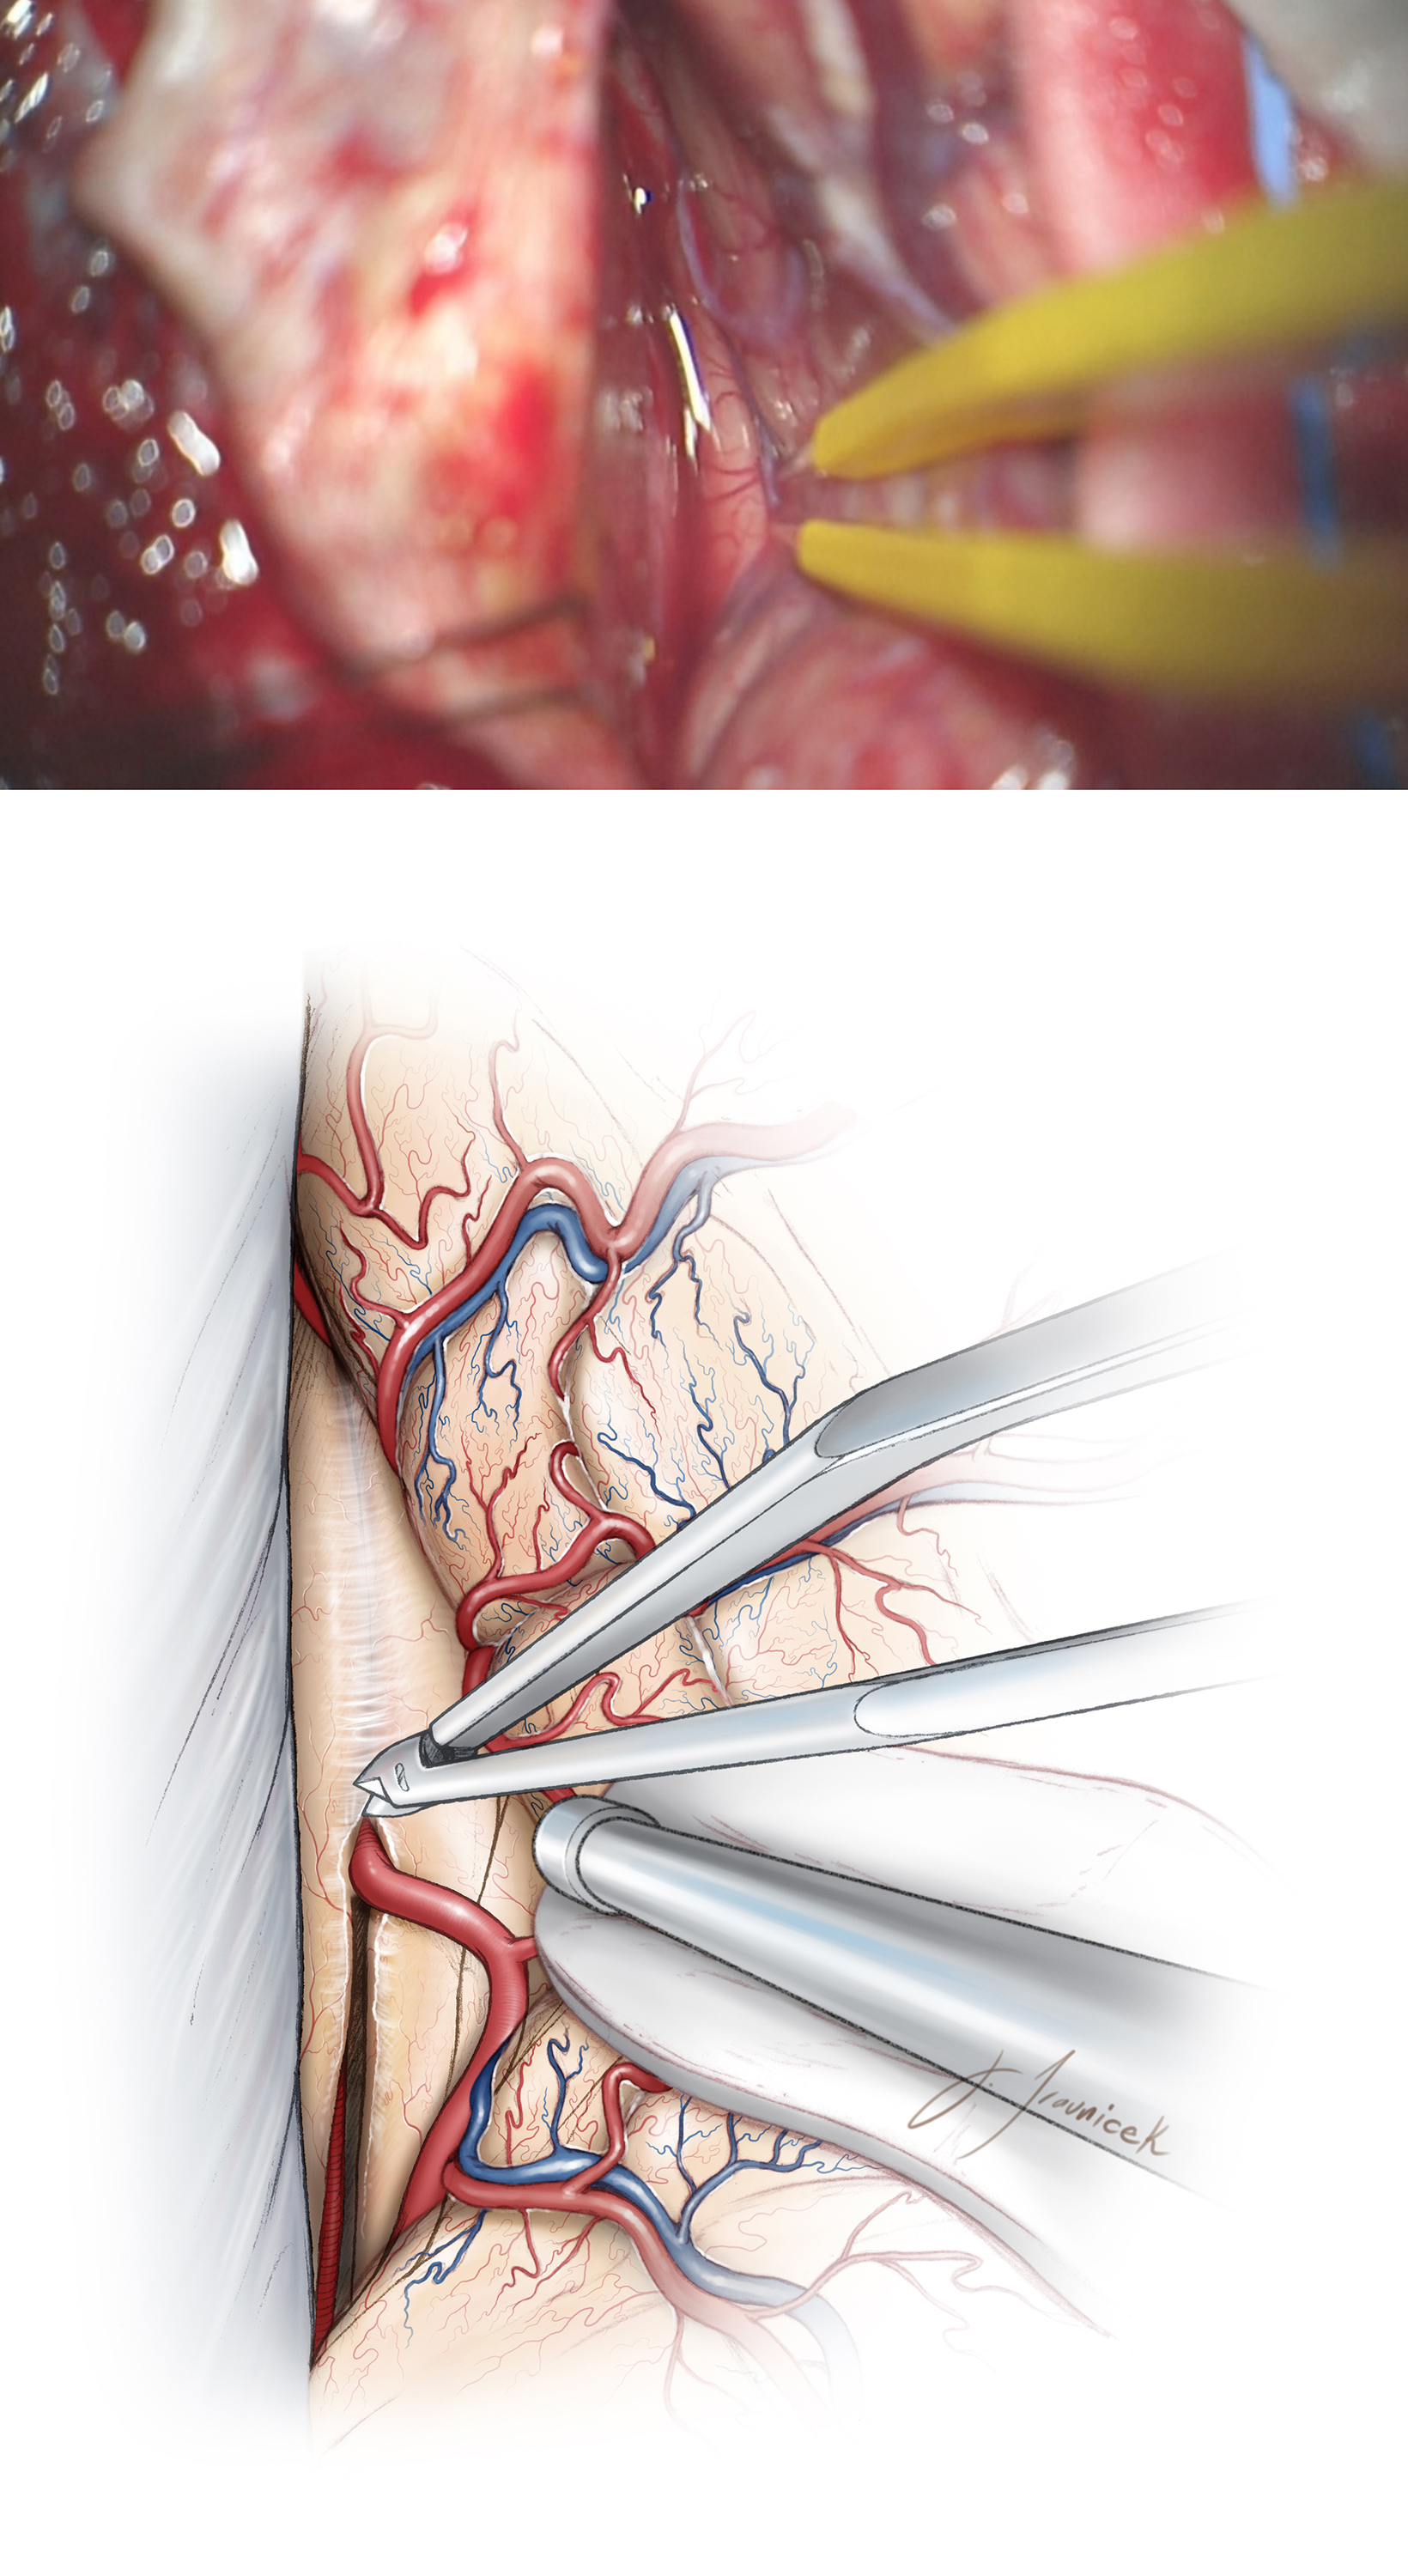 Figure 11: The subdural portion of the dissection is completed along the falx and the ipsilateral callosomarginal artery is traced along the midline to the level of the cingulum (top image). This artery will define the midline dissection planes so the surgeon can avoid subpial injury to the adherent cortices of the cingula through meticulous and sharp microsurgical techniques (bottom image).